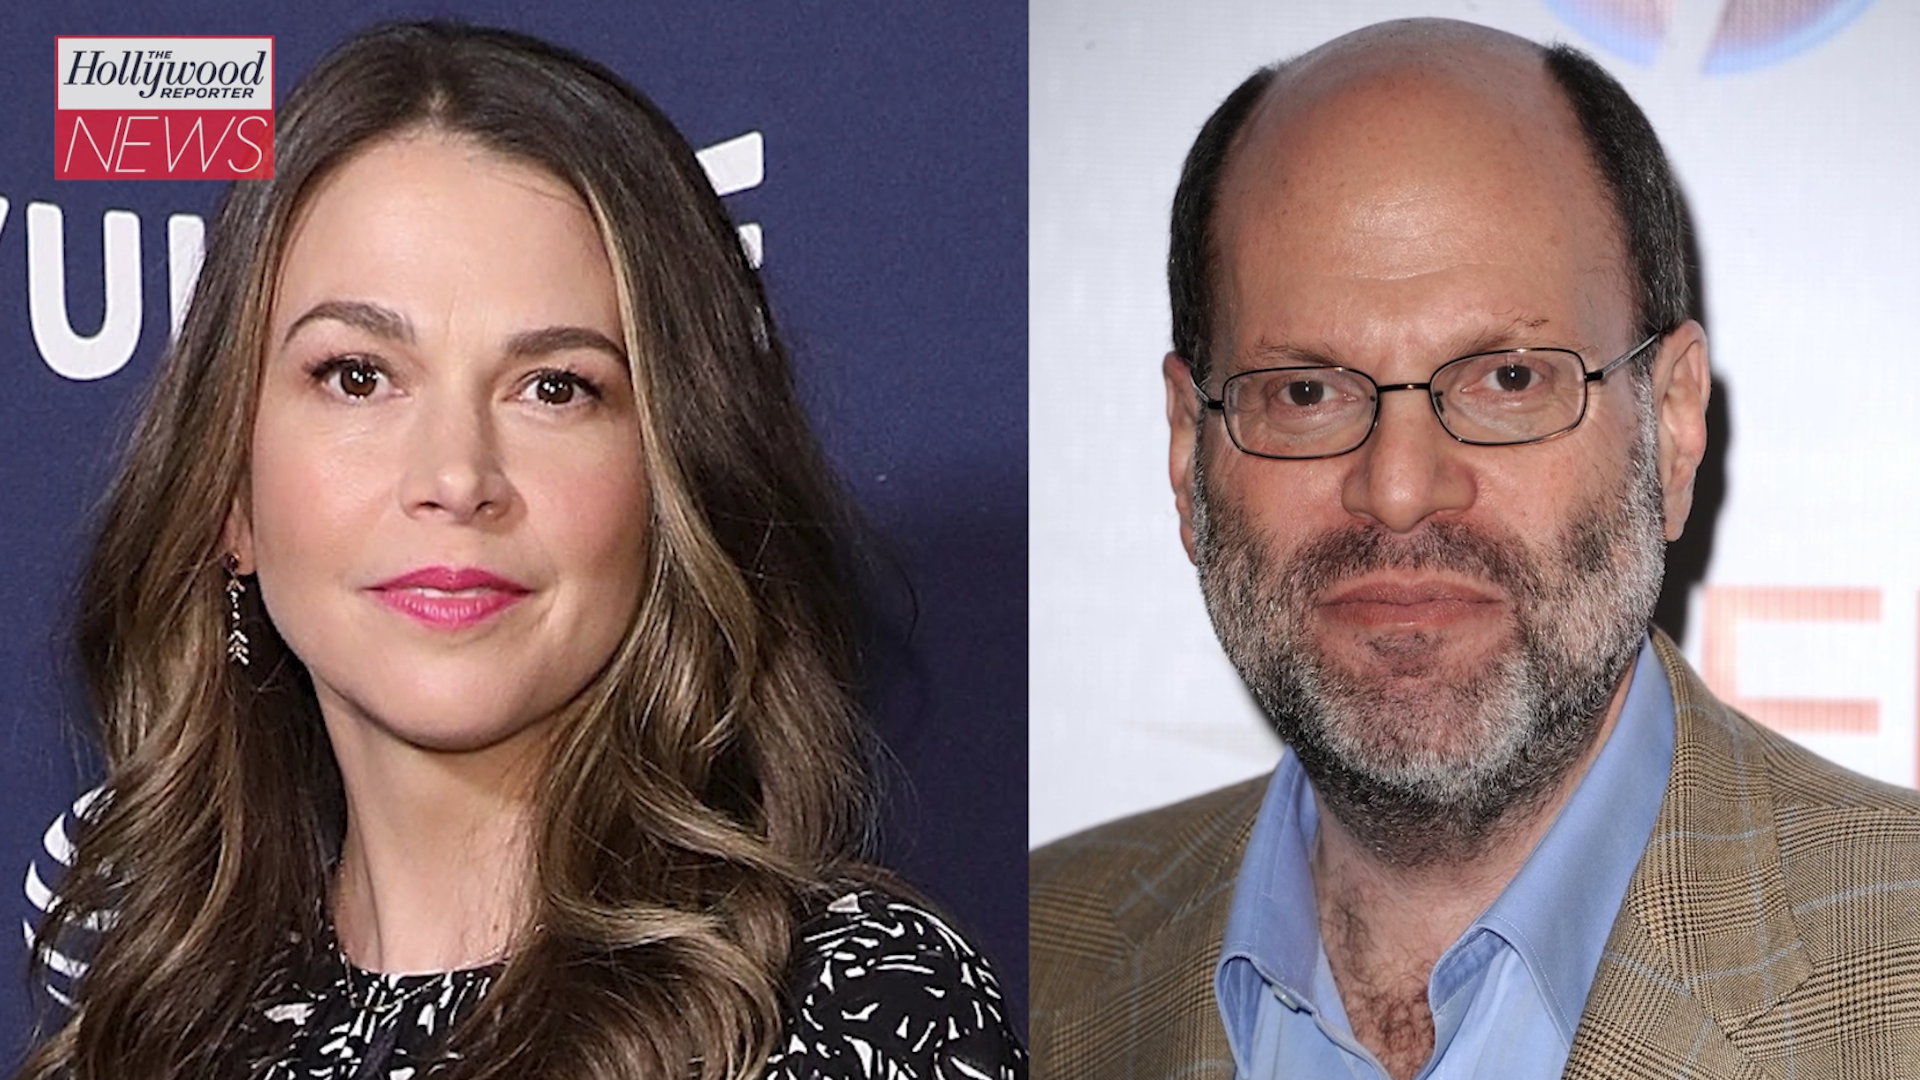 'Music Man' Star Sutton Foster Breaks Silence on Scott Rudin Amid Abuse Allegations | THR News